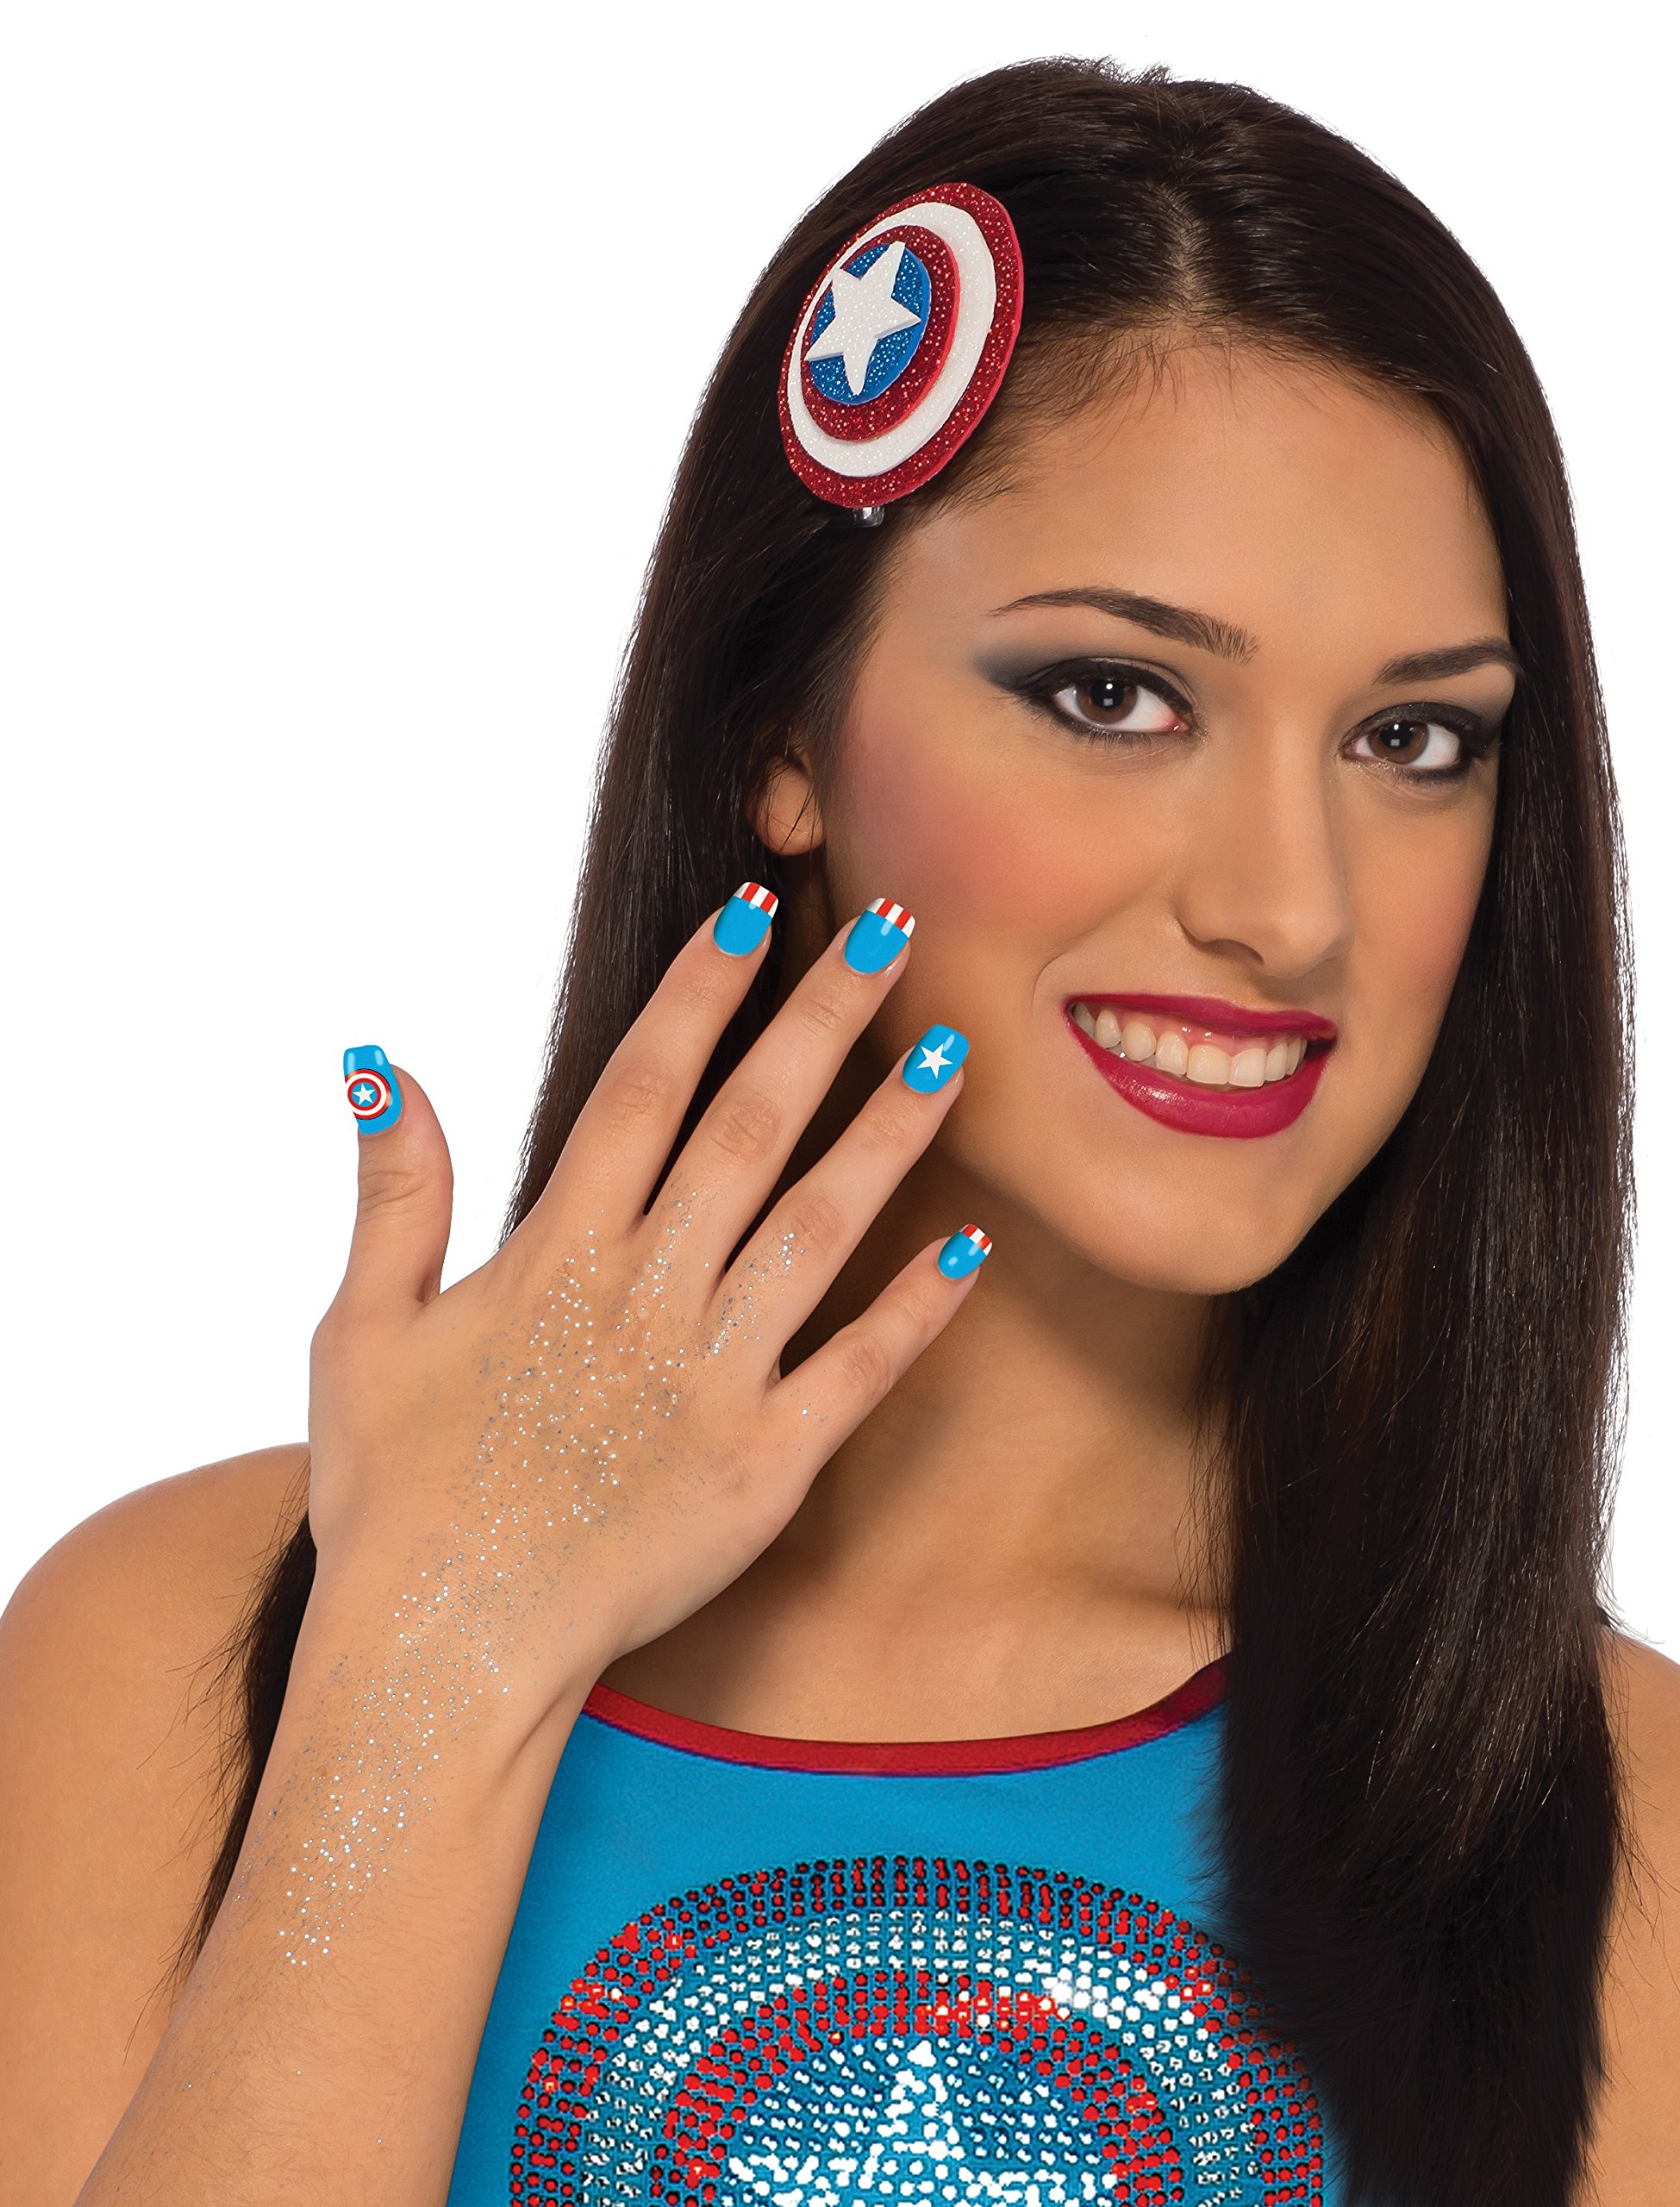 Rubie's Marvel Women's Universe American Dream Hair and Nails Kit, Multi, One Size